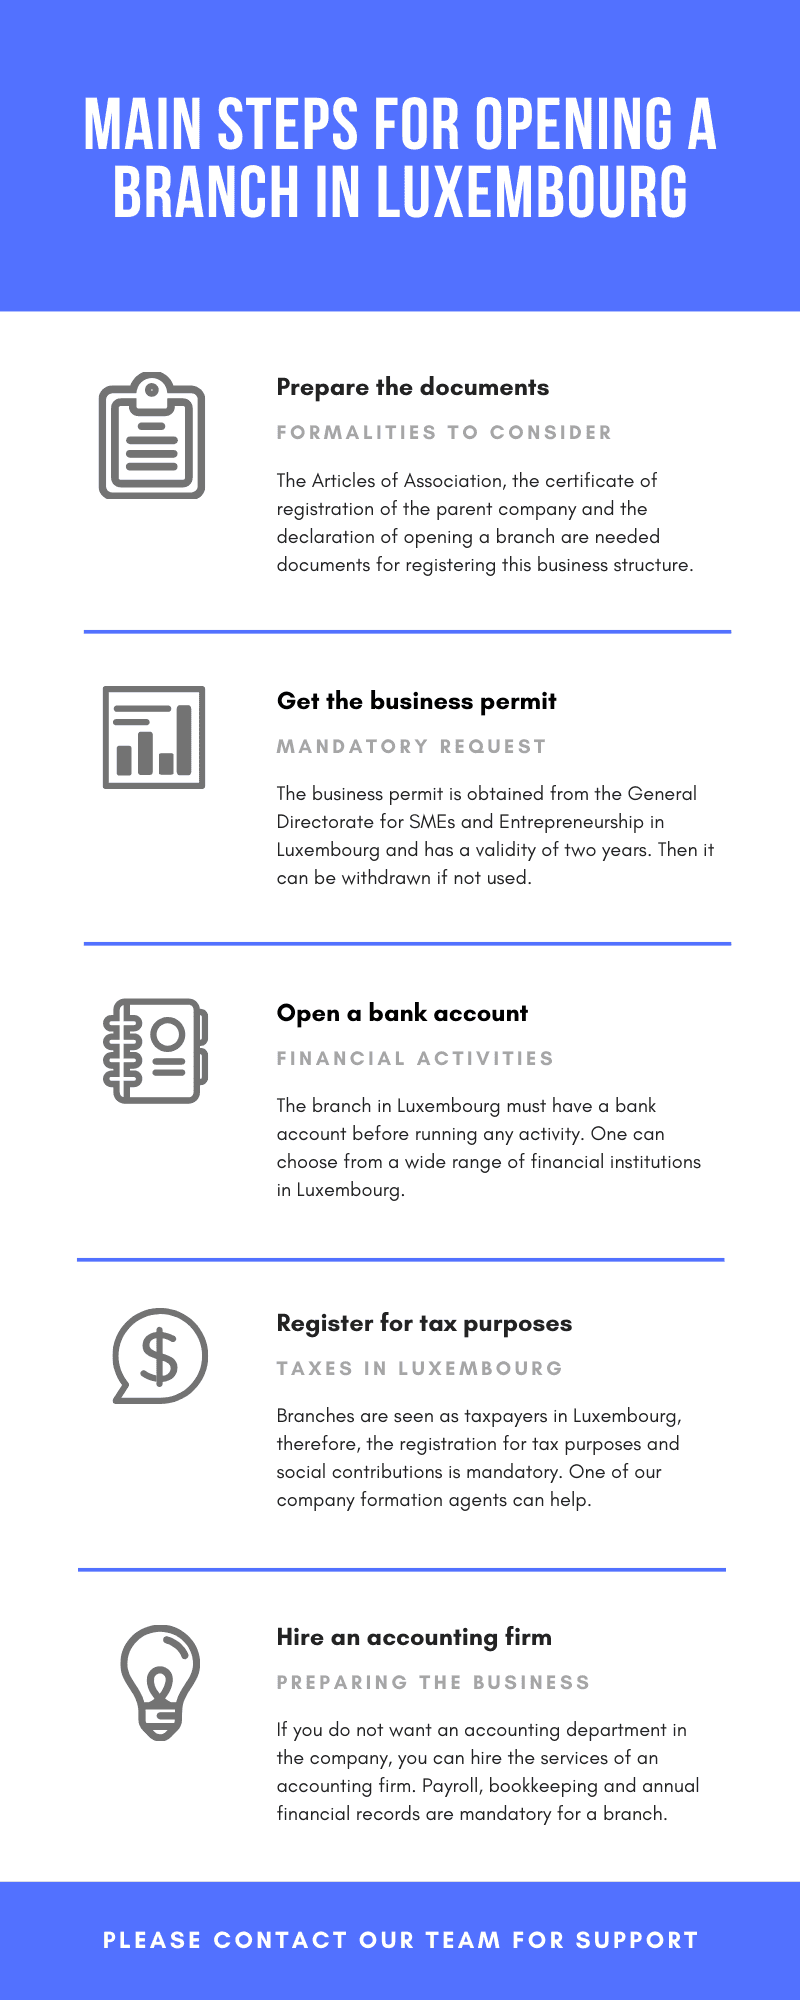 Main steps for opening a branch inLuxembourg.png